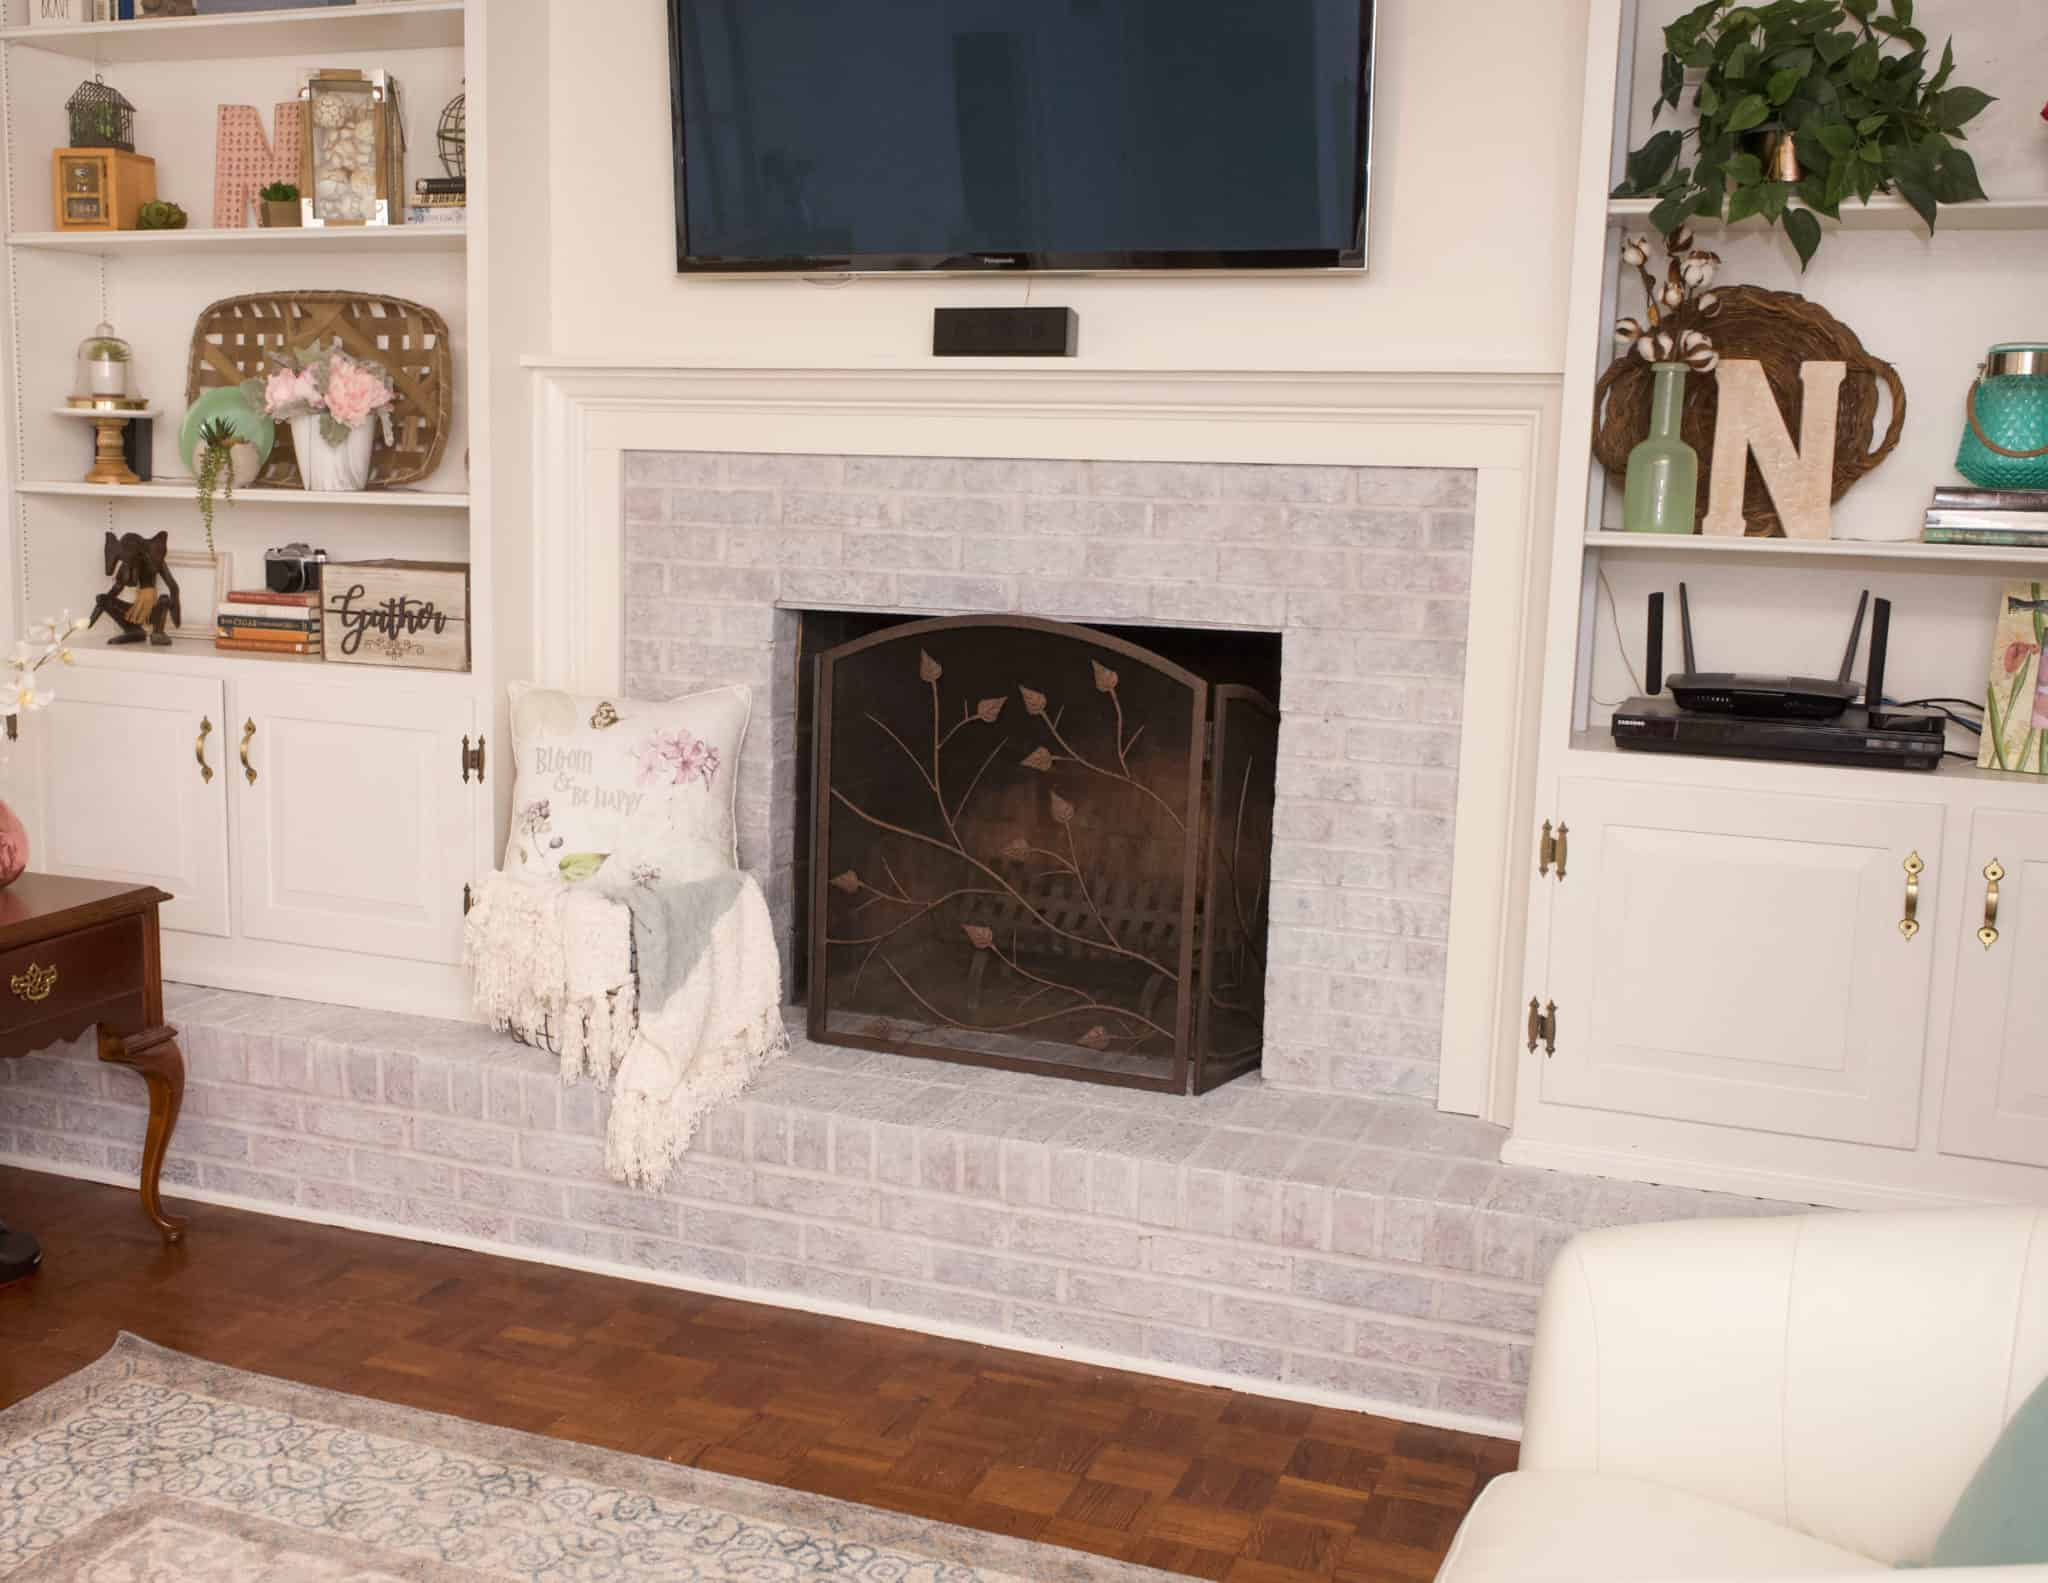 Do you love the look of whitewashed brick? This tutorial will show you step by step how to whitewash your fireplace in order to update your home.